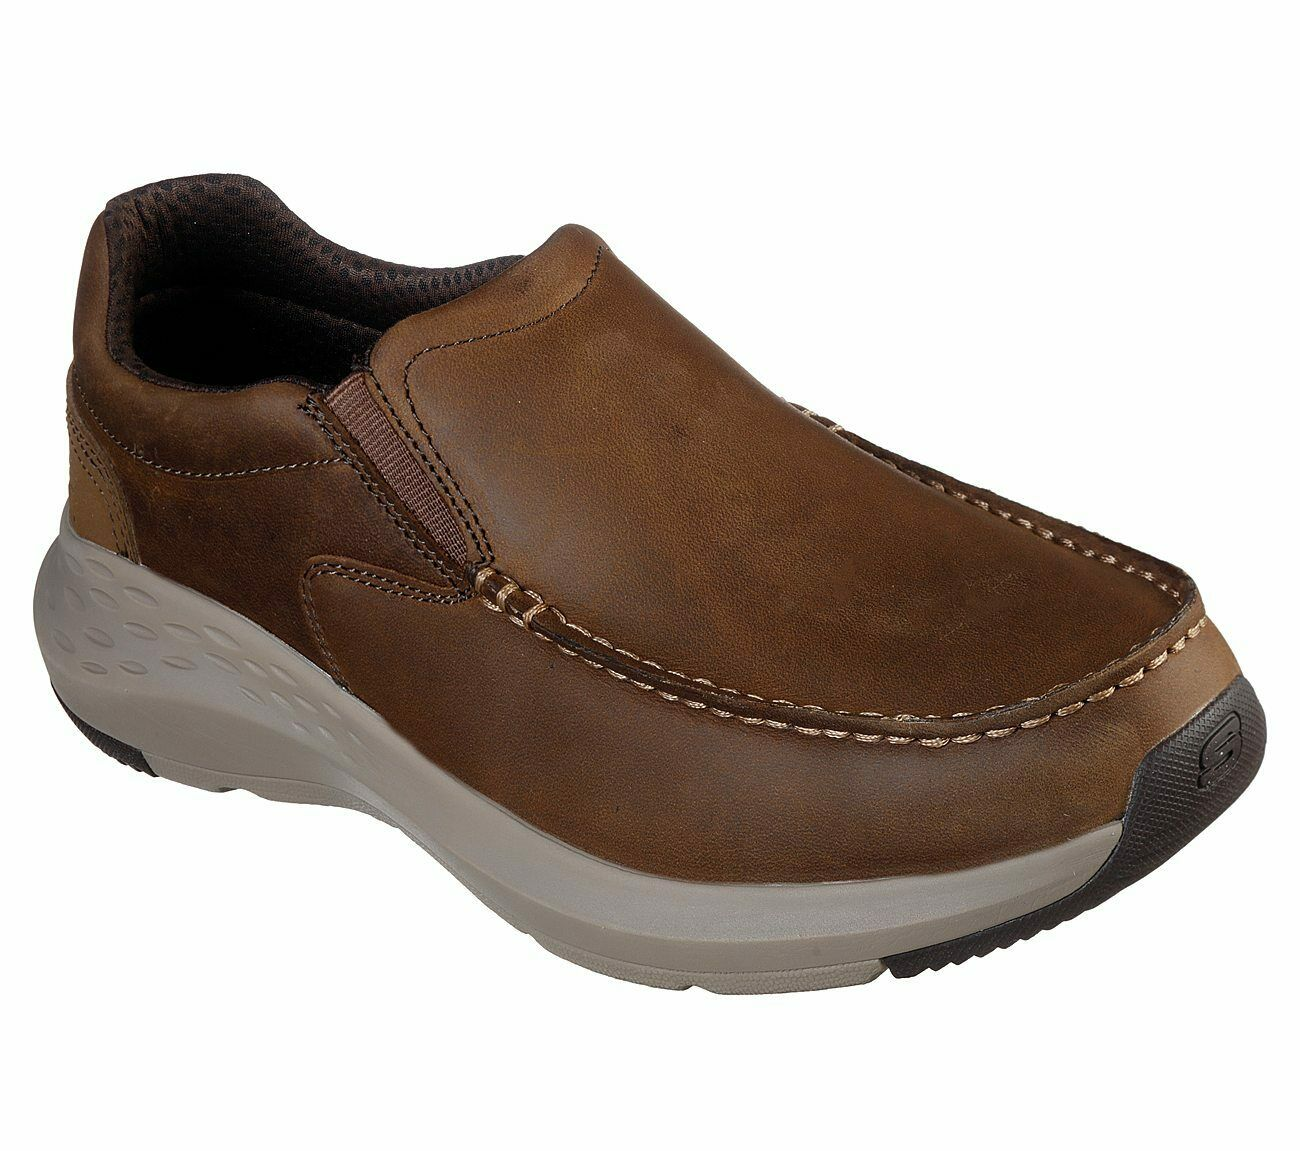 Skechers Brown shoes Men Memory Foam Casual Slip On Leather Loafer Moc Toe 65831